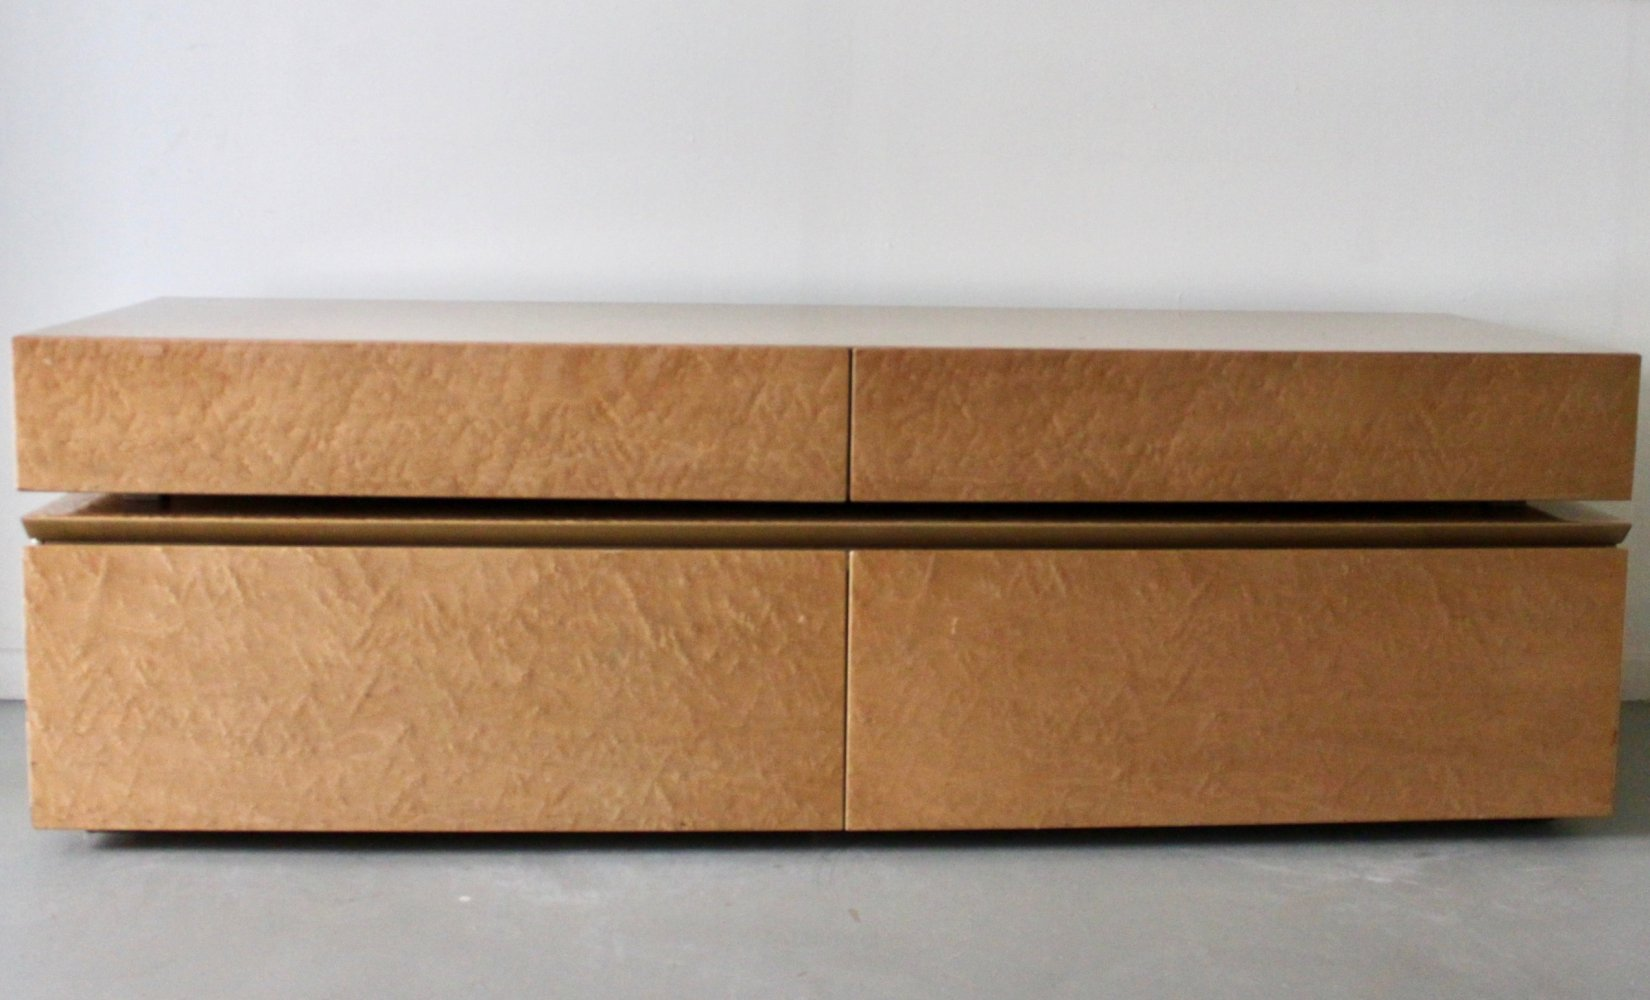 Chest of drawers by Saporiti